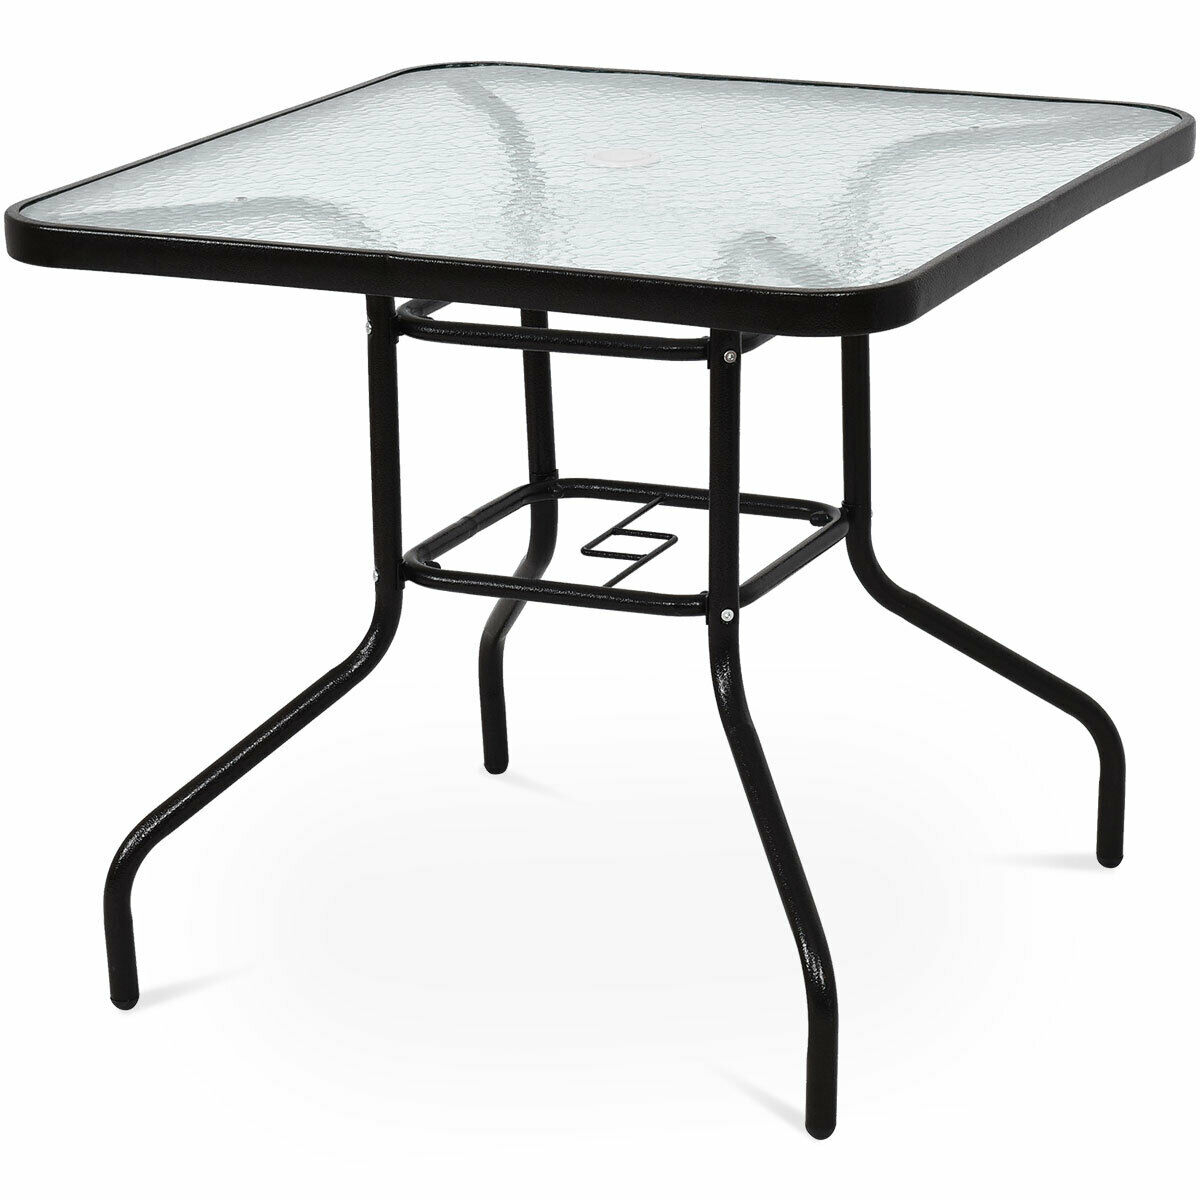 Costway 32'' Patio Square Table Steel Frame Dining Table Within 2018 Cainsville 32'' Dining Tables (View 6 of 15)